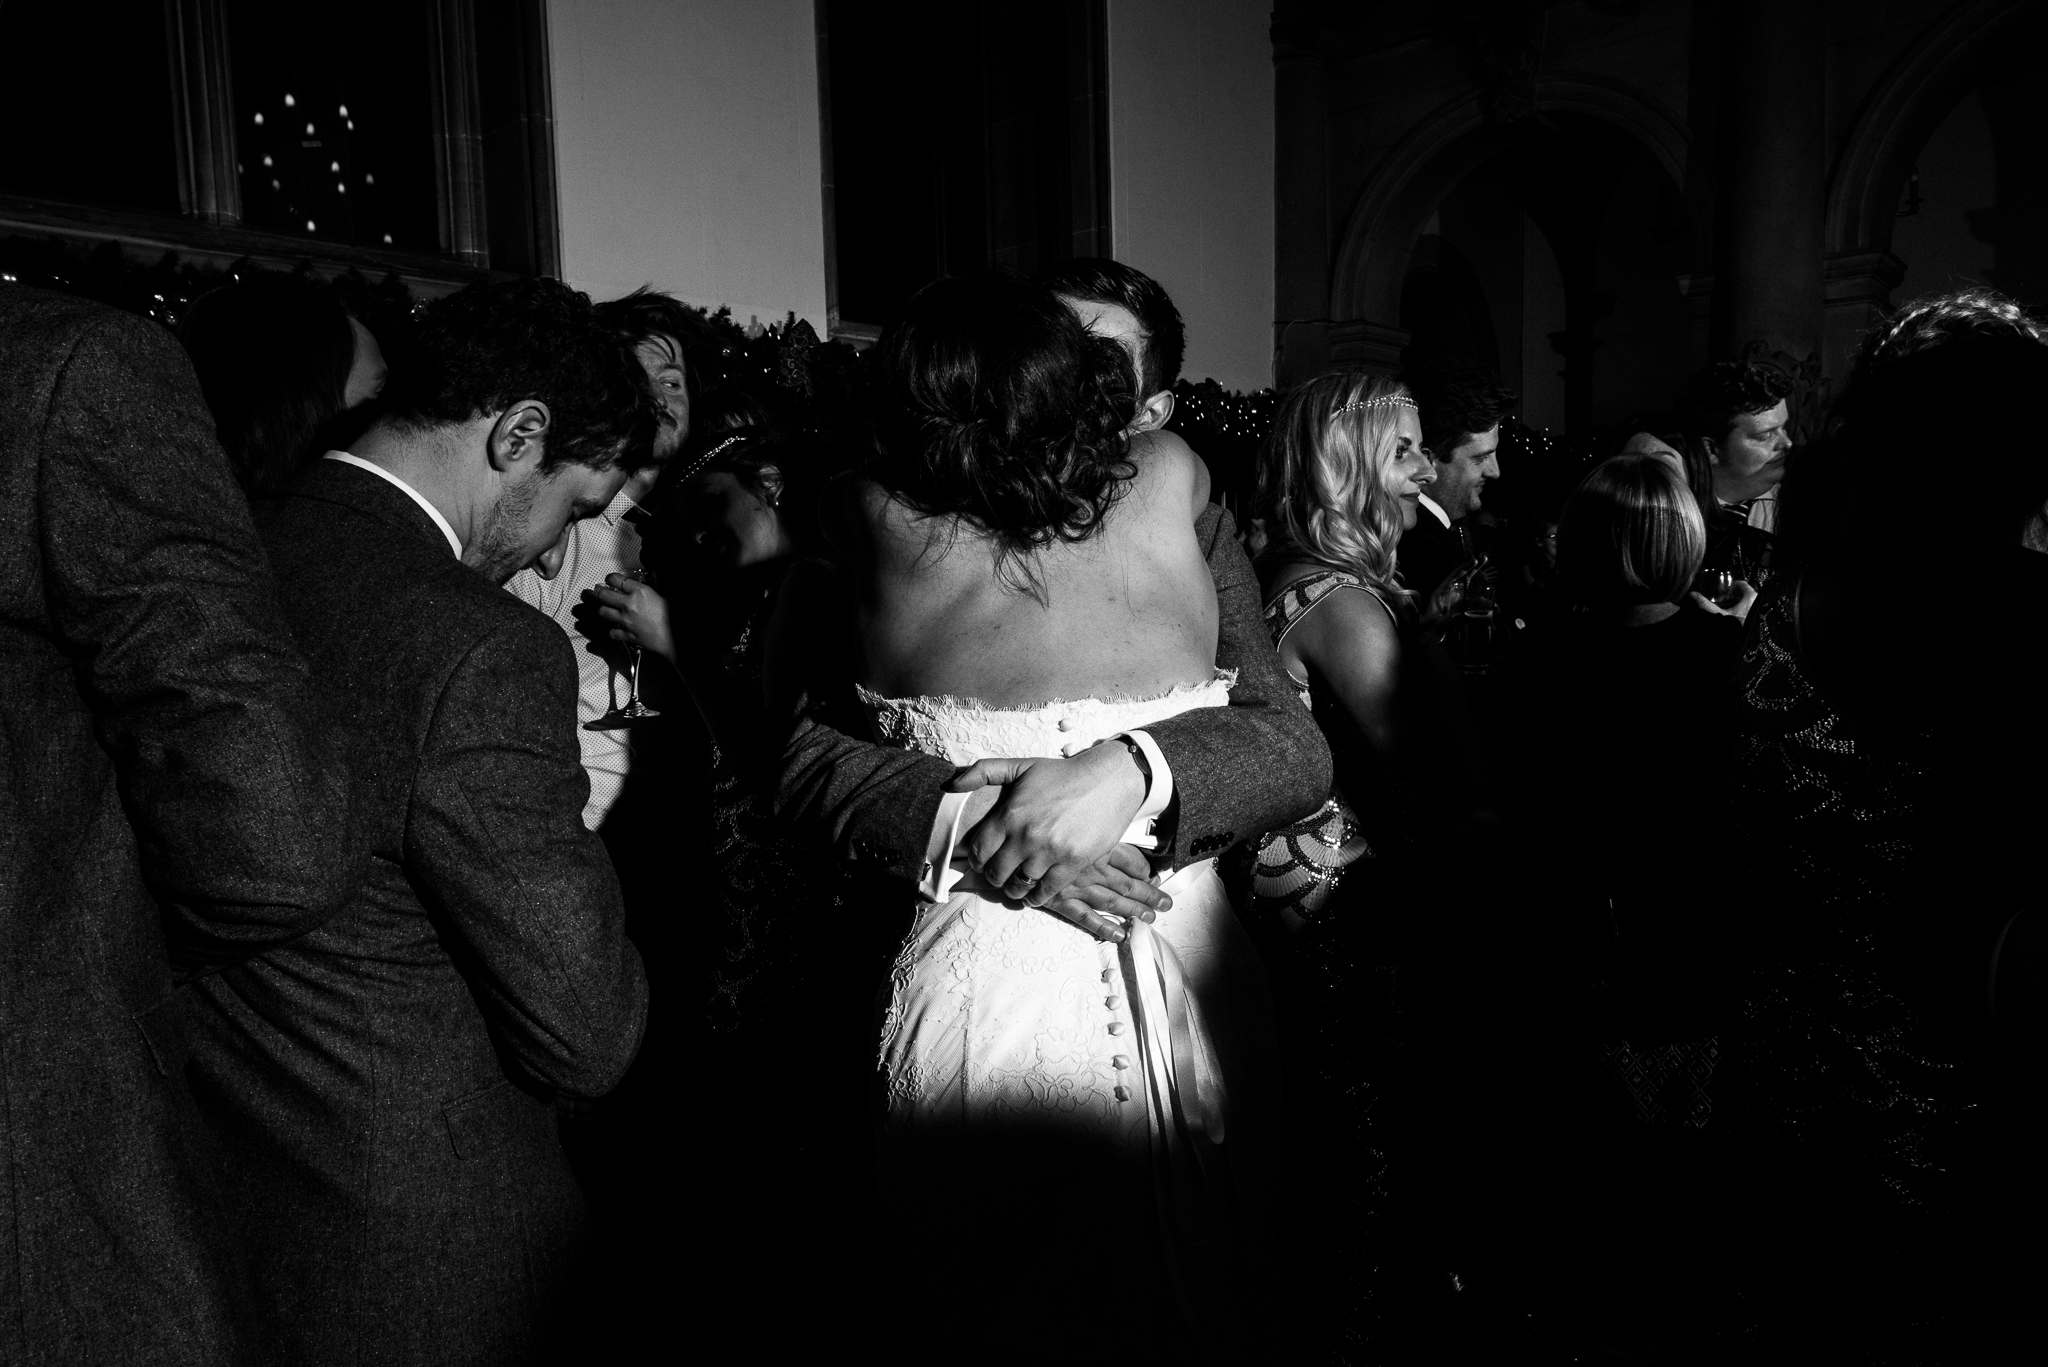 Staffordshire Winter Christmas Wedding at Holy Trinity Church and Keele Hall - Documentary Photography by Jenny Harper-45.jpg